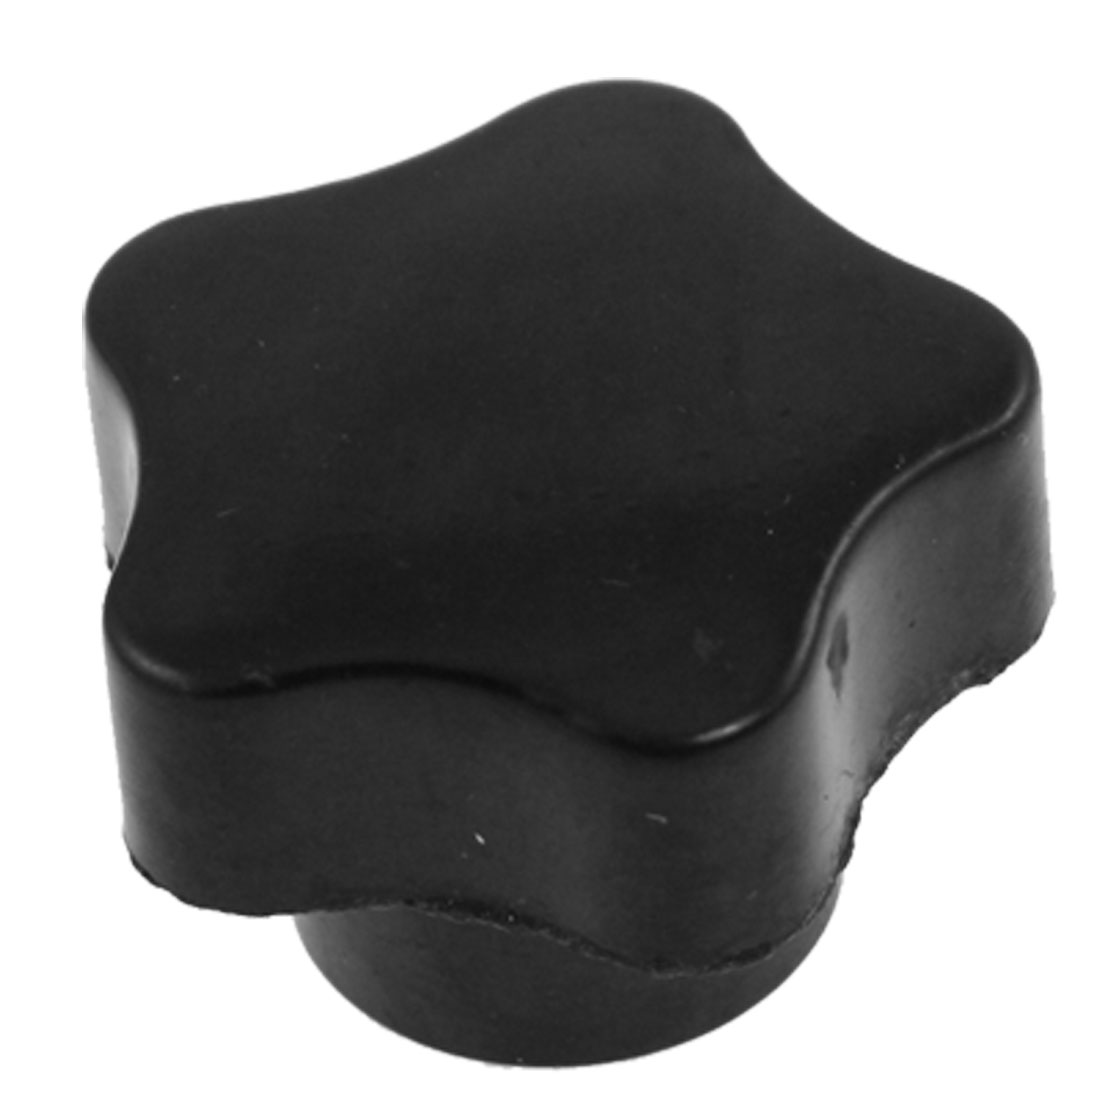 Replacement 6mm Diameter Female Thread Black Plastic Grip Star Knob